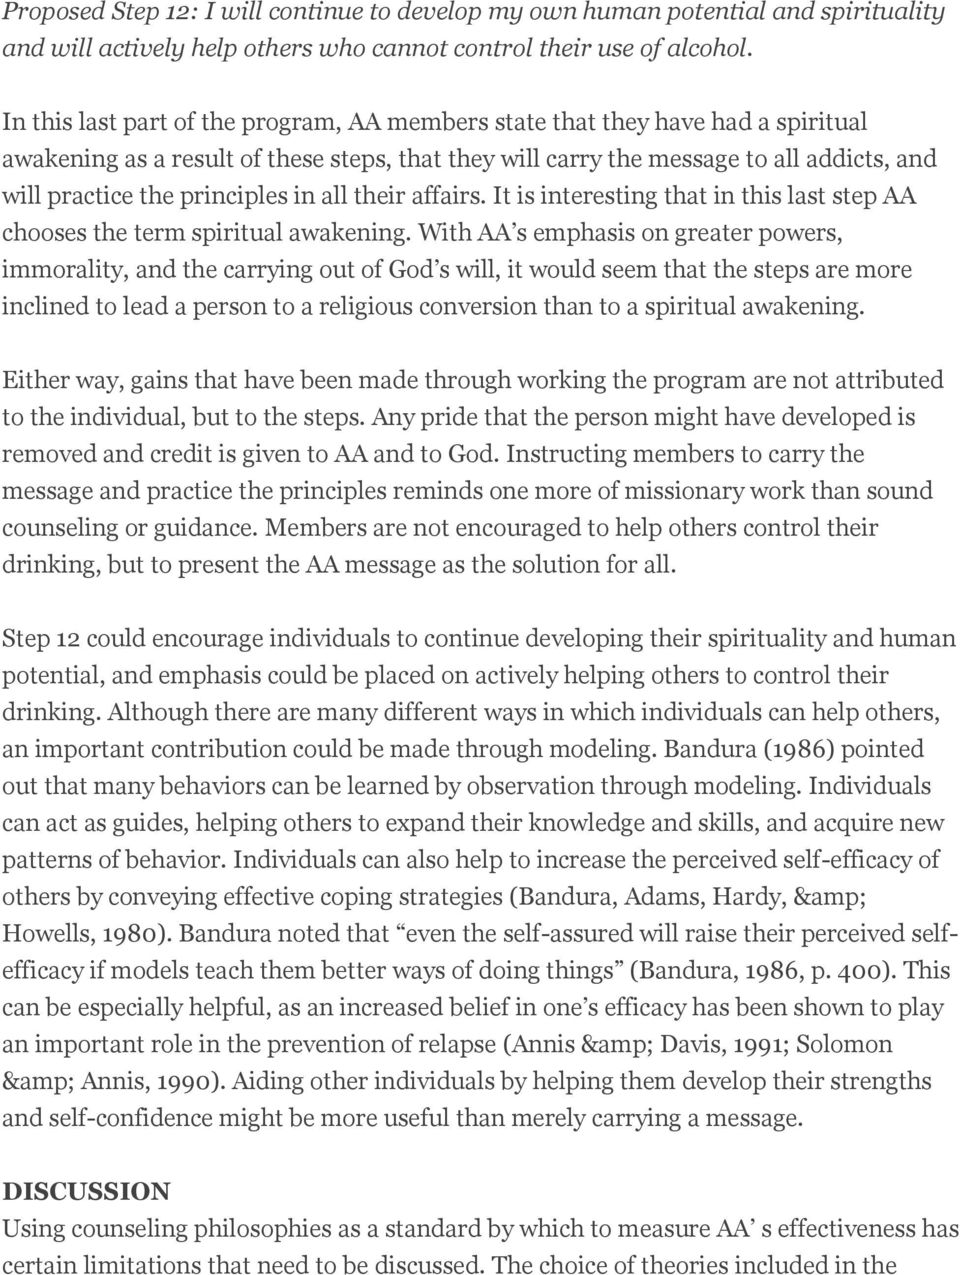 principles in all their affairs. It is interesting that in this last step AA chooses the term spiritual awakening.